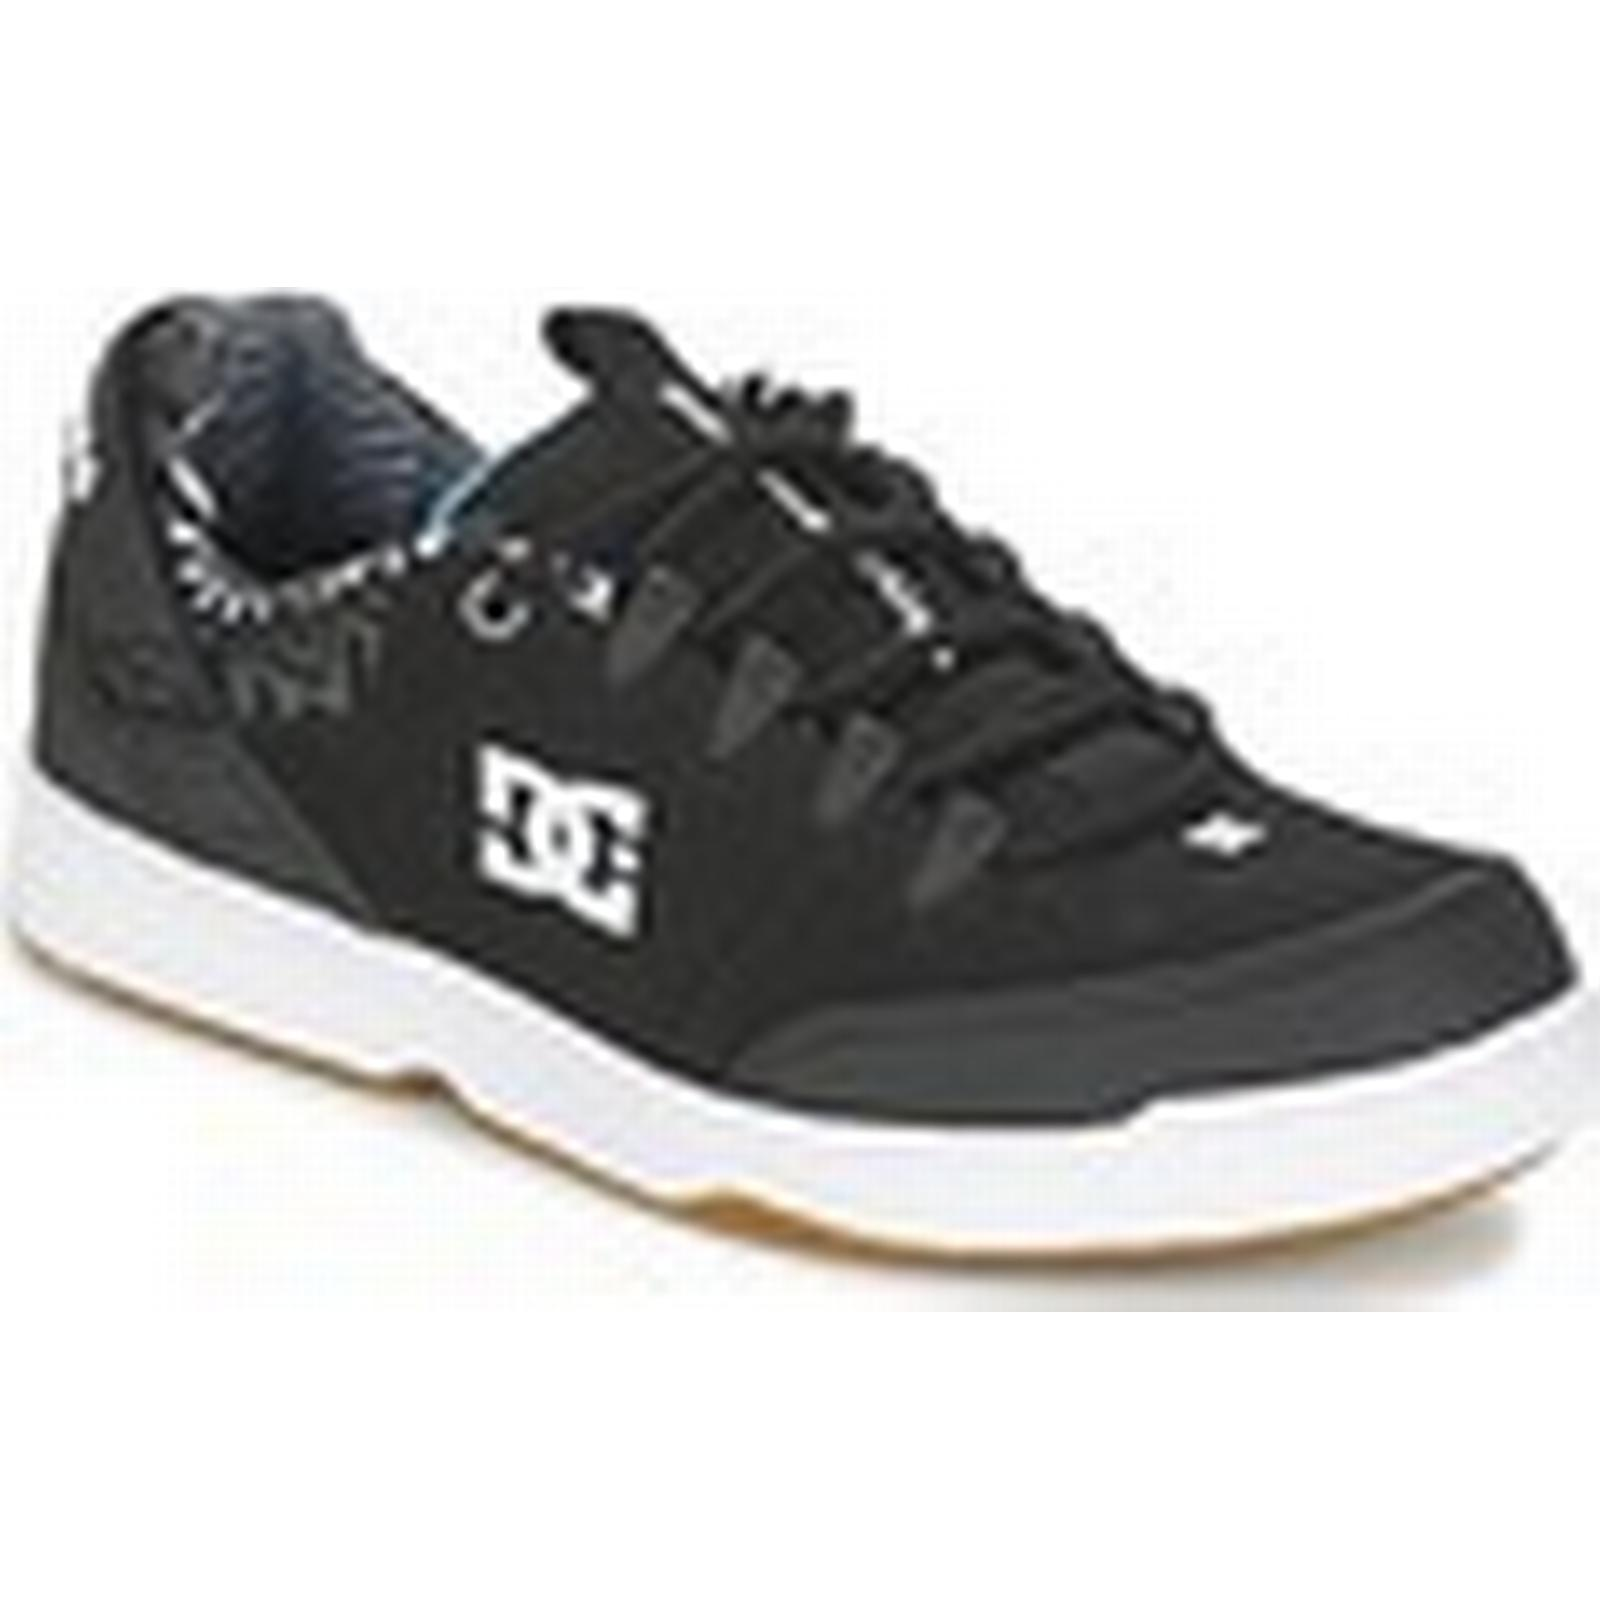 dc poids chaussures chaussures syntaxe ko m poids dc corporel6 hommes f44c61